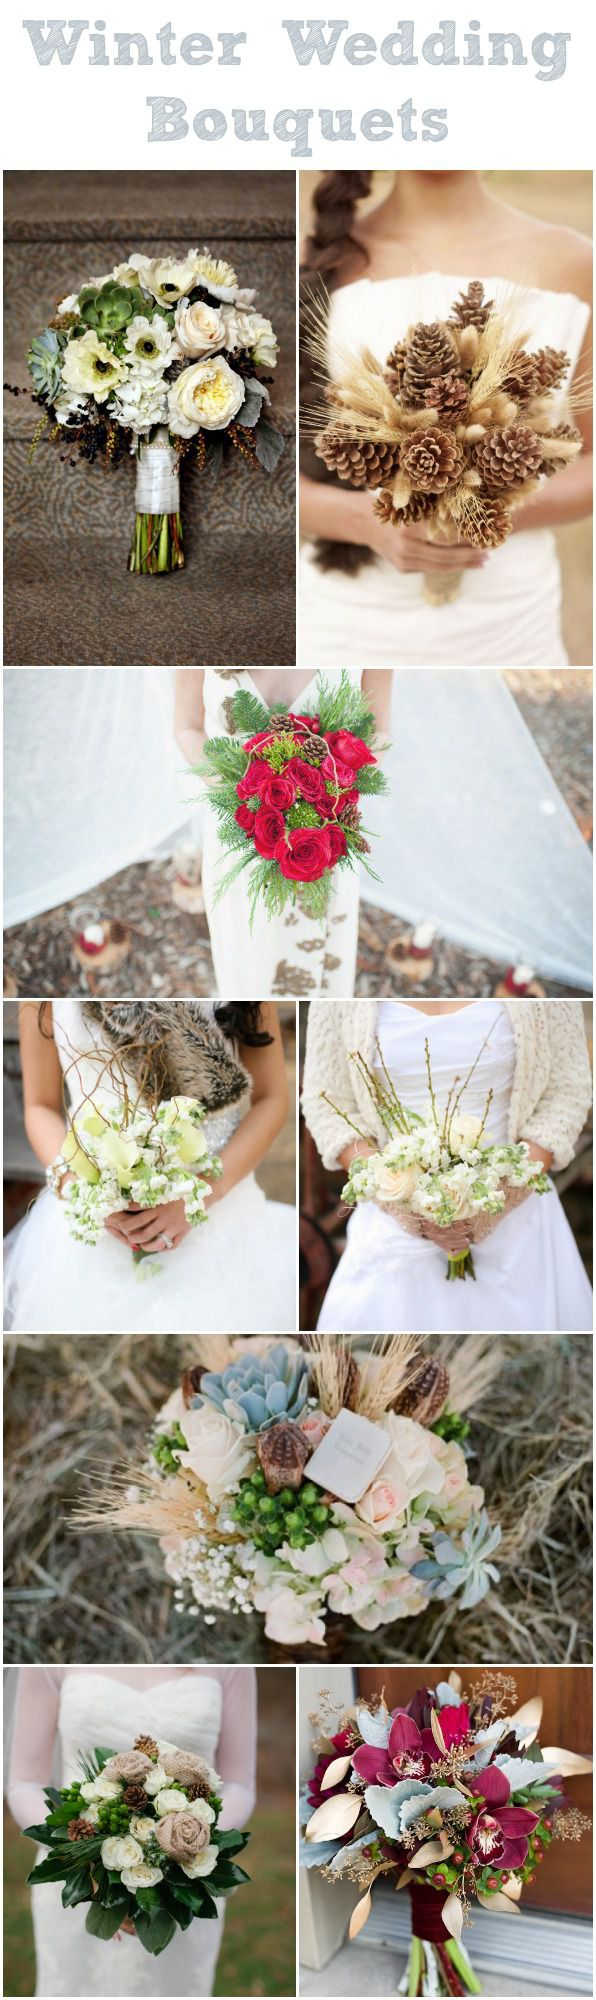 20 Winter Wedding Bouquets Rustic Wedding Chic